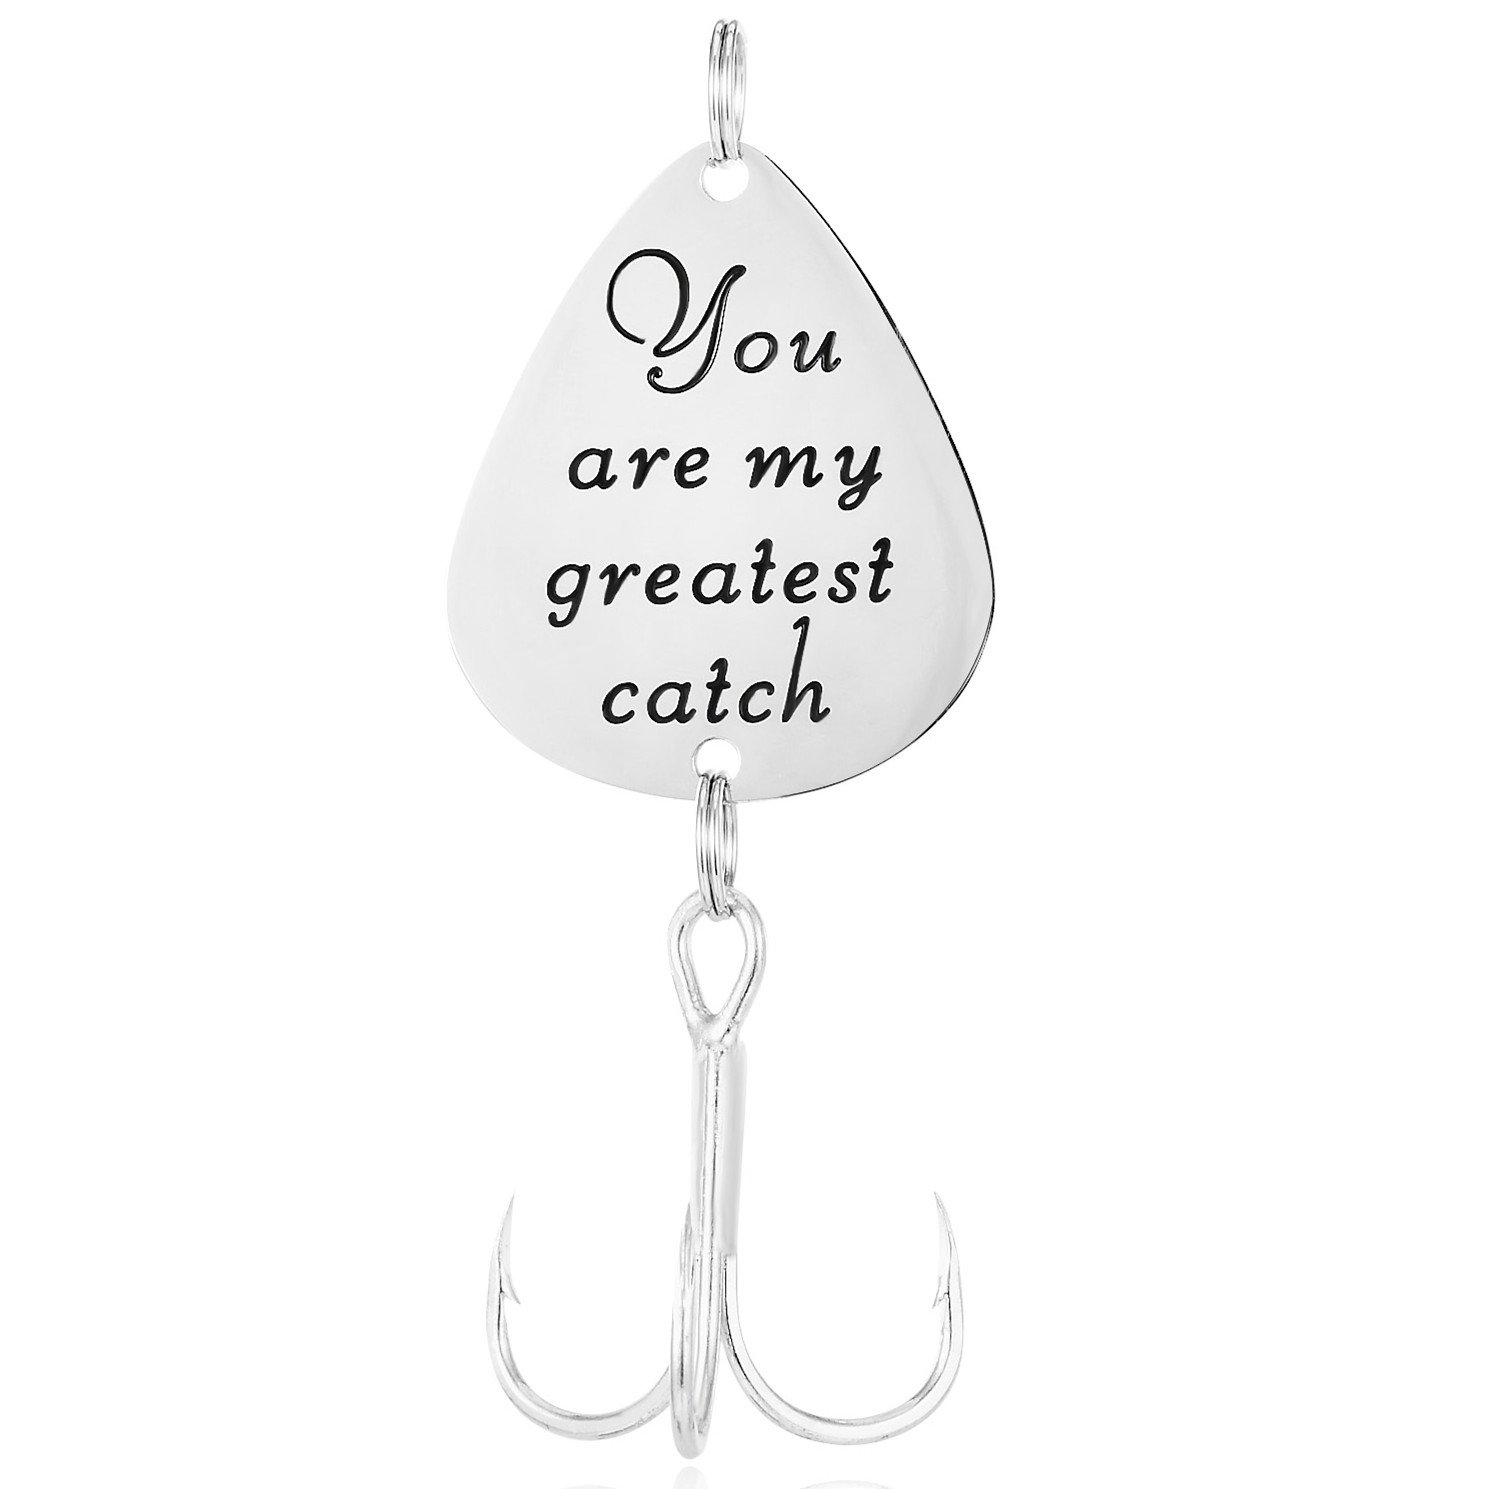 ELOI You are my greatest catch Fishing Lure Boy Friend Fisherman GIft Valentines's Day Christmas Gift for Husband